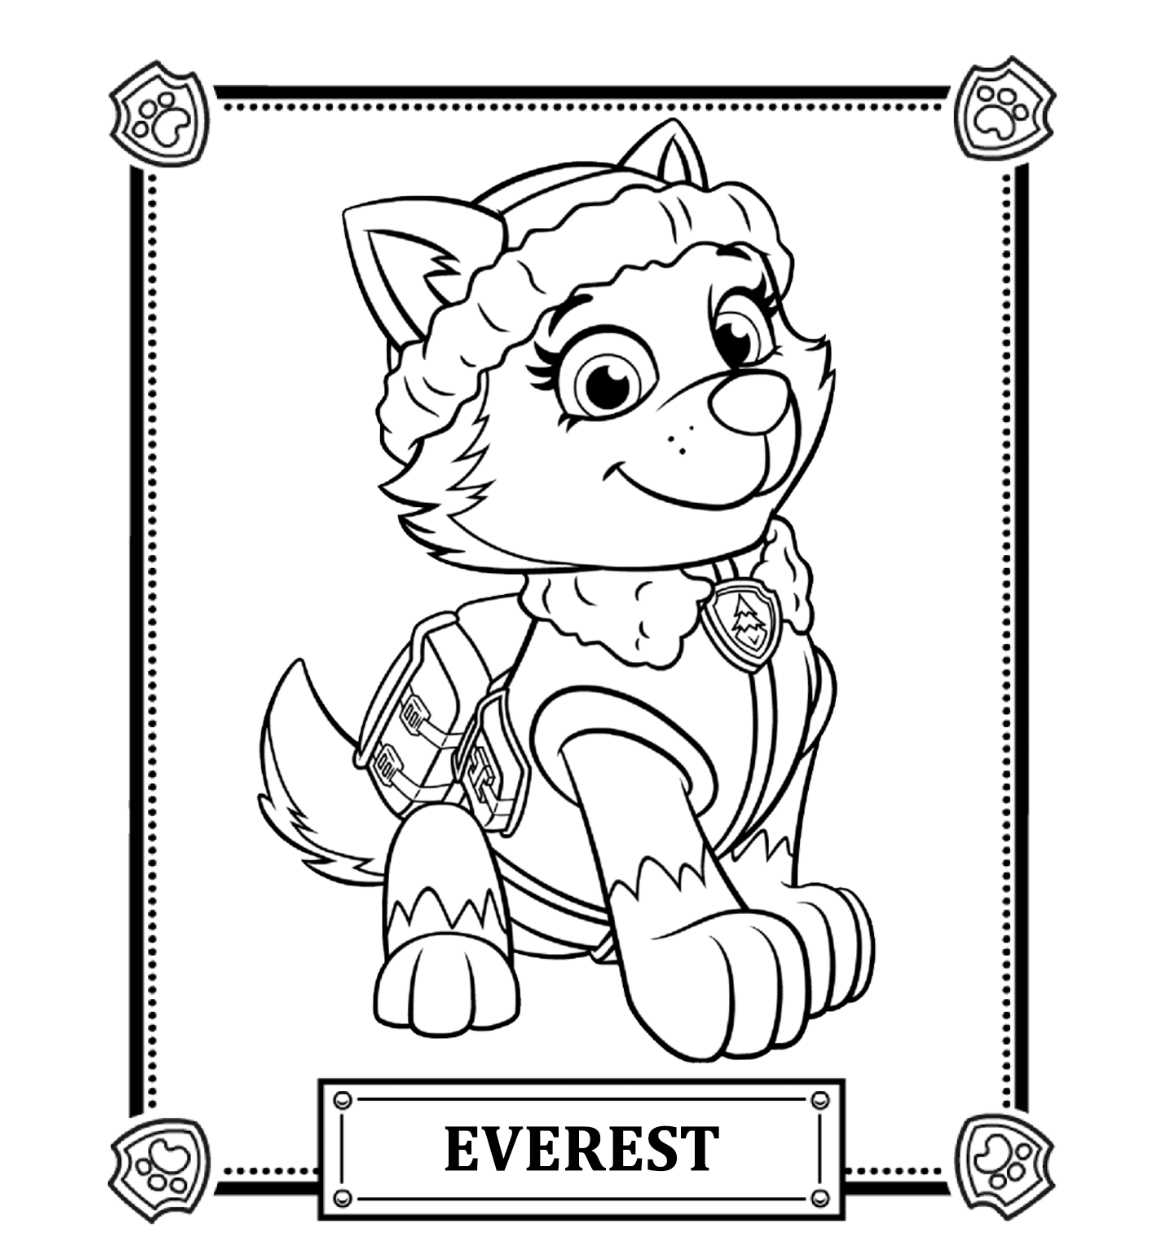 Paw Patrol Coloring Pages Paw Patrol Coloring Pages Everest Coloringstar